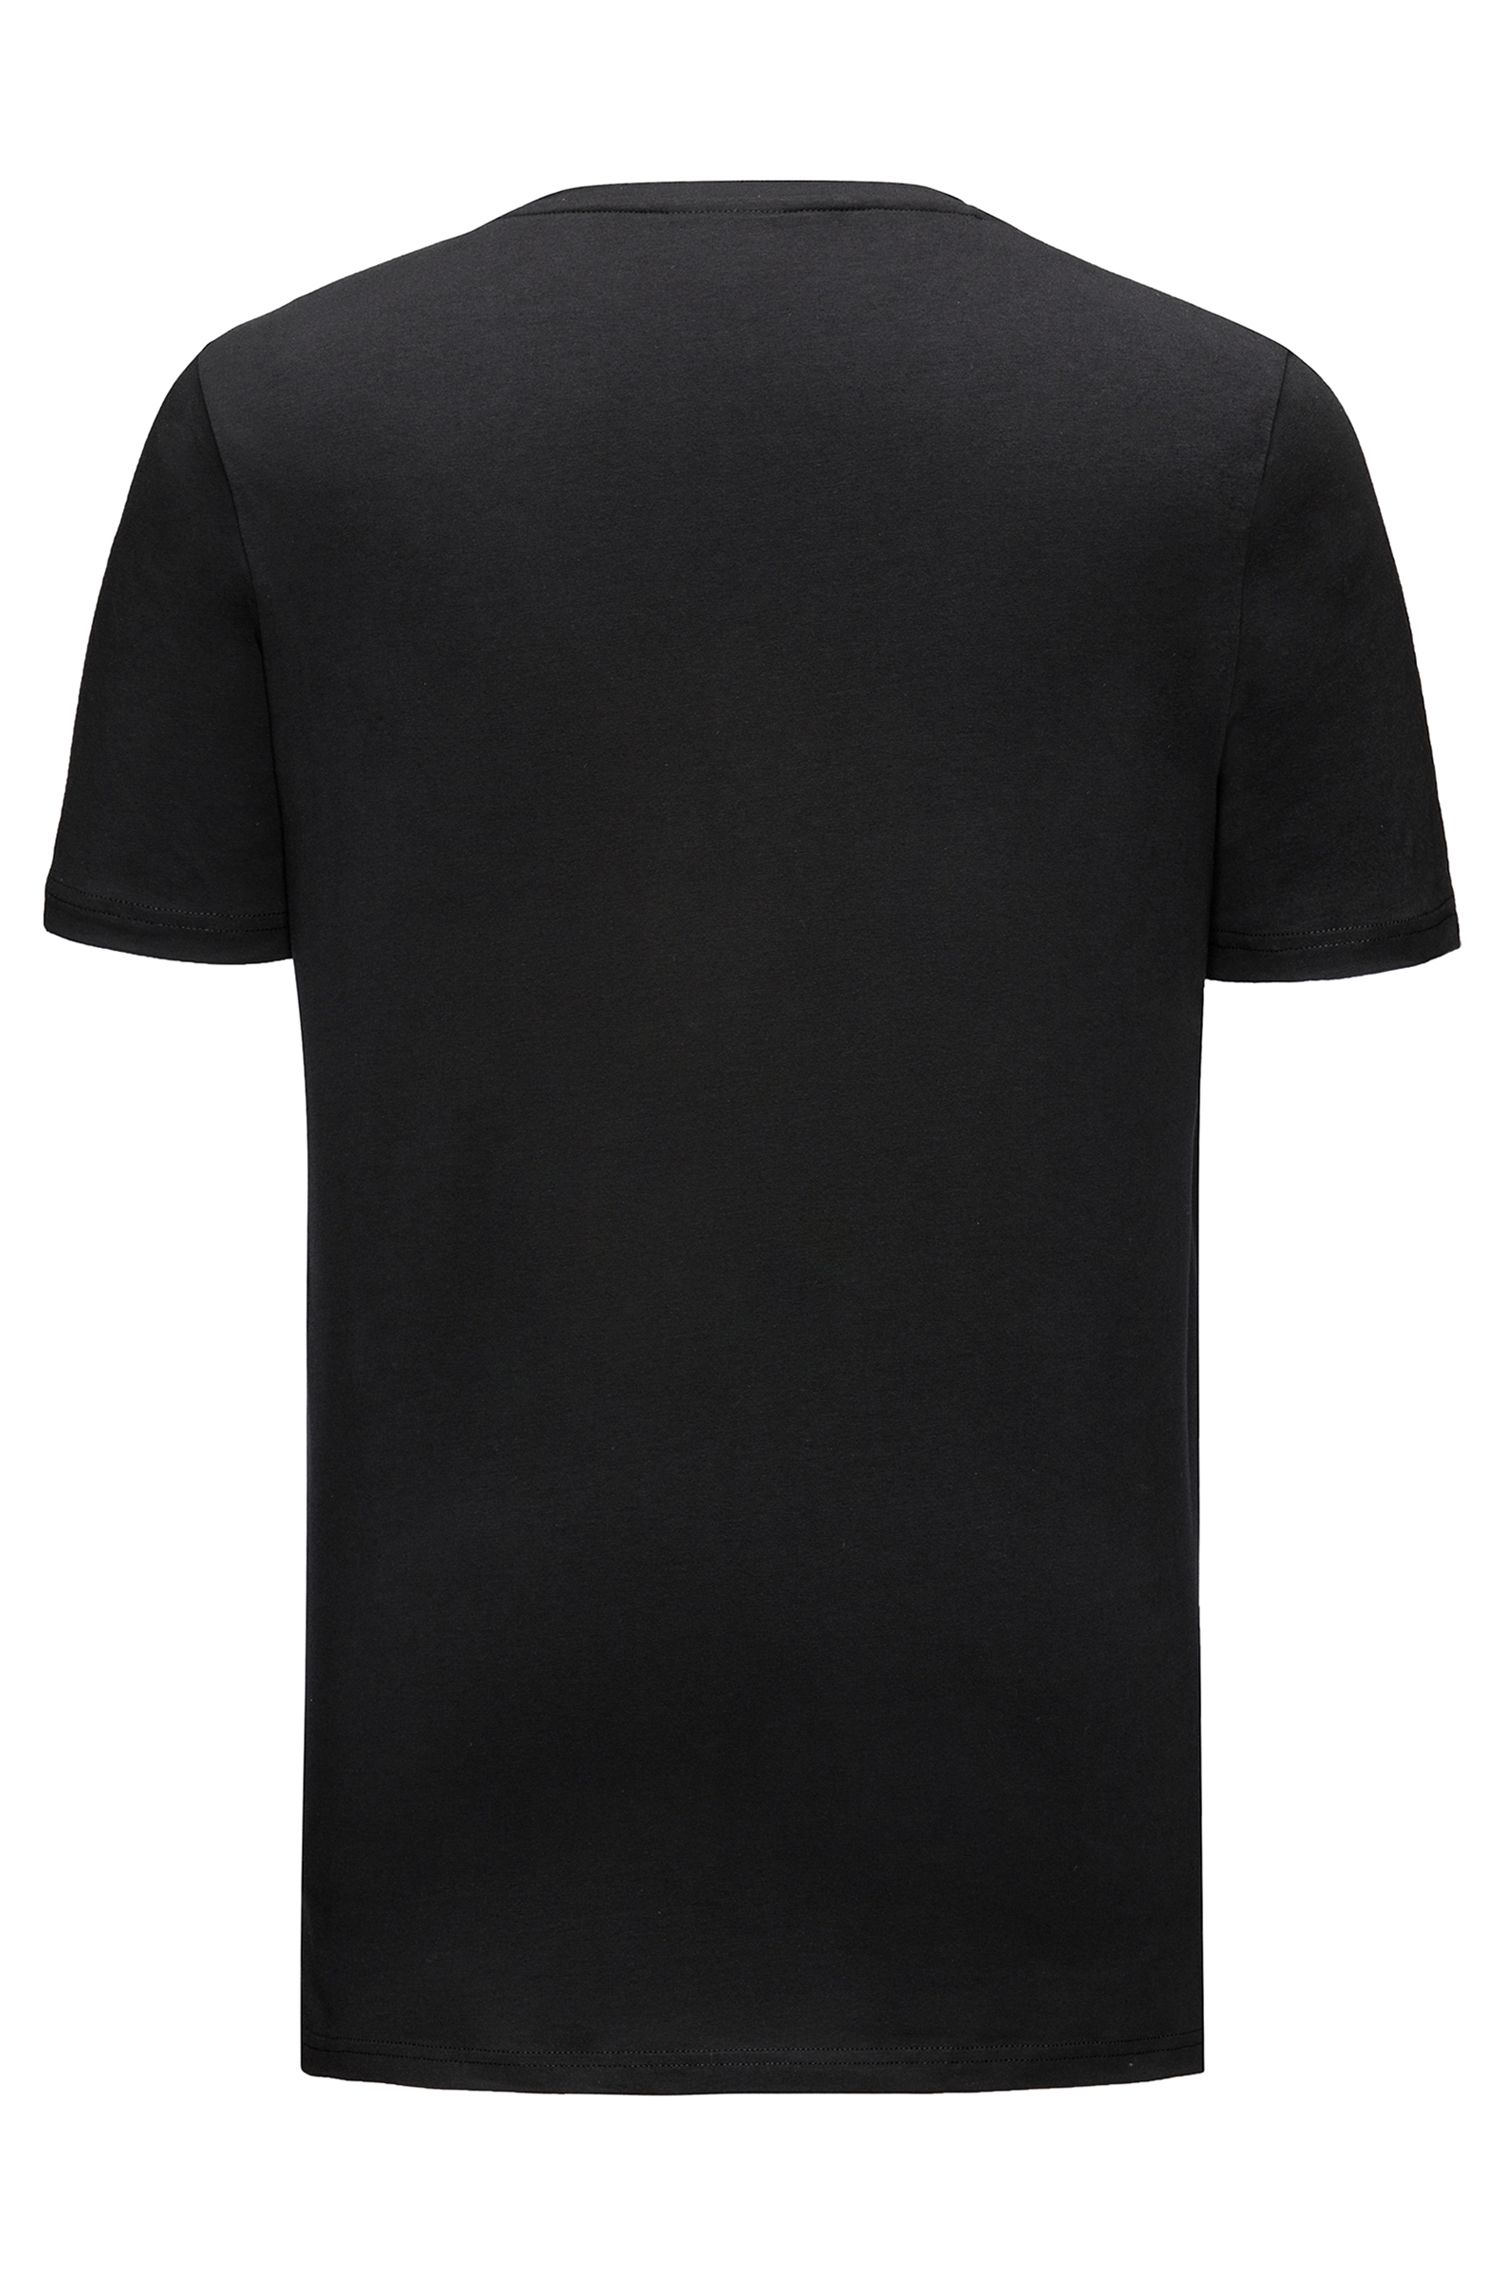 V-neck T-shirt in stretch cotton jersey